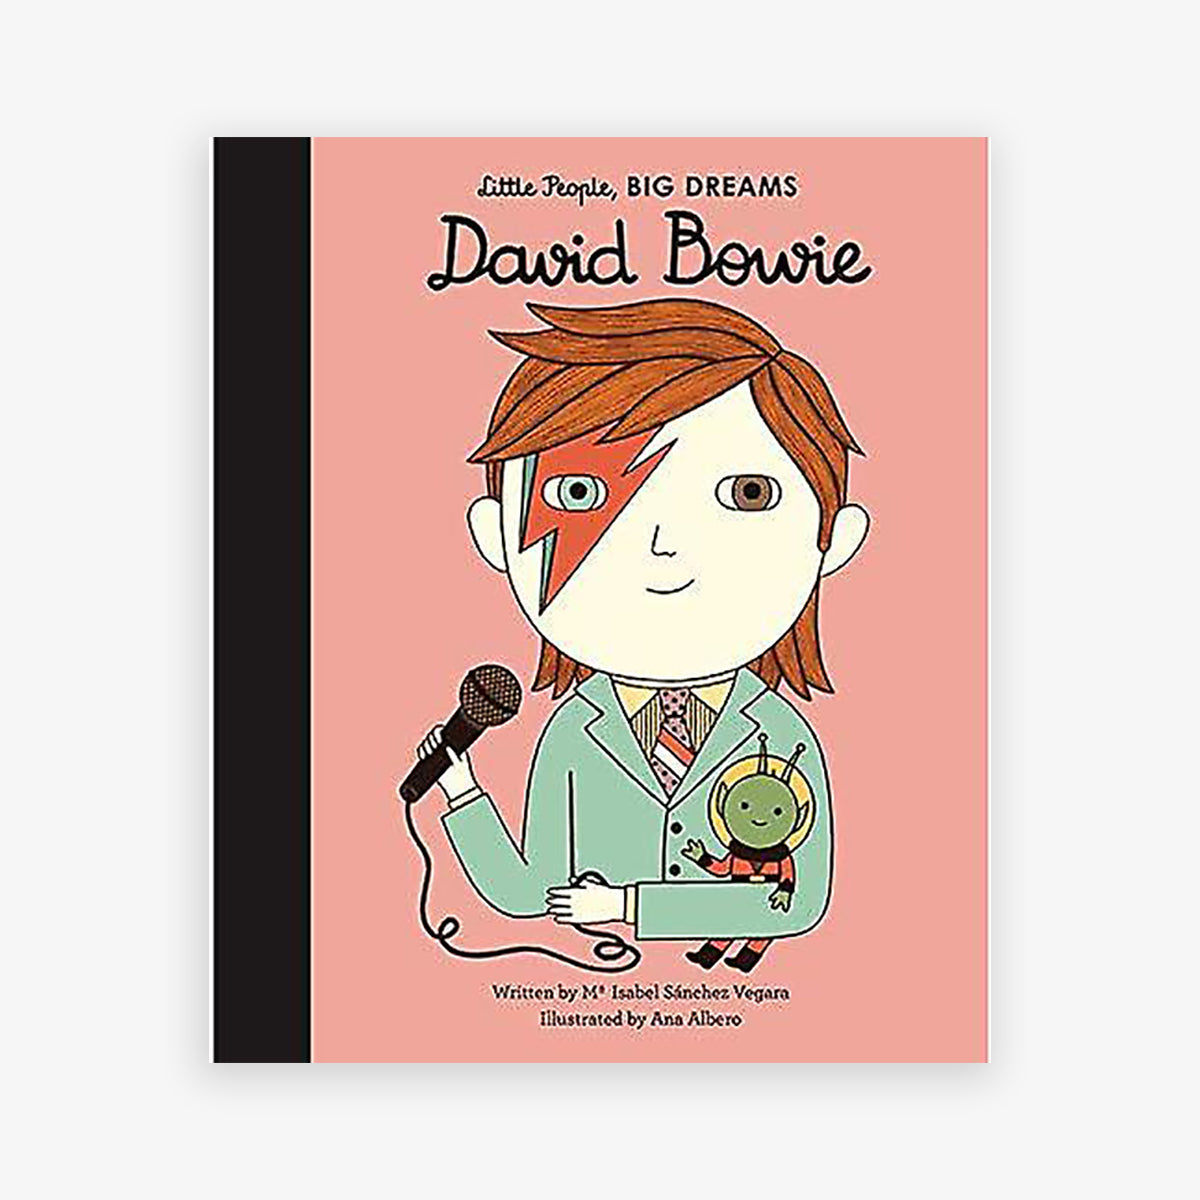 BOOK 'LITTLE PEOPLE, BIG DREAMS' // DAVID BOWIE